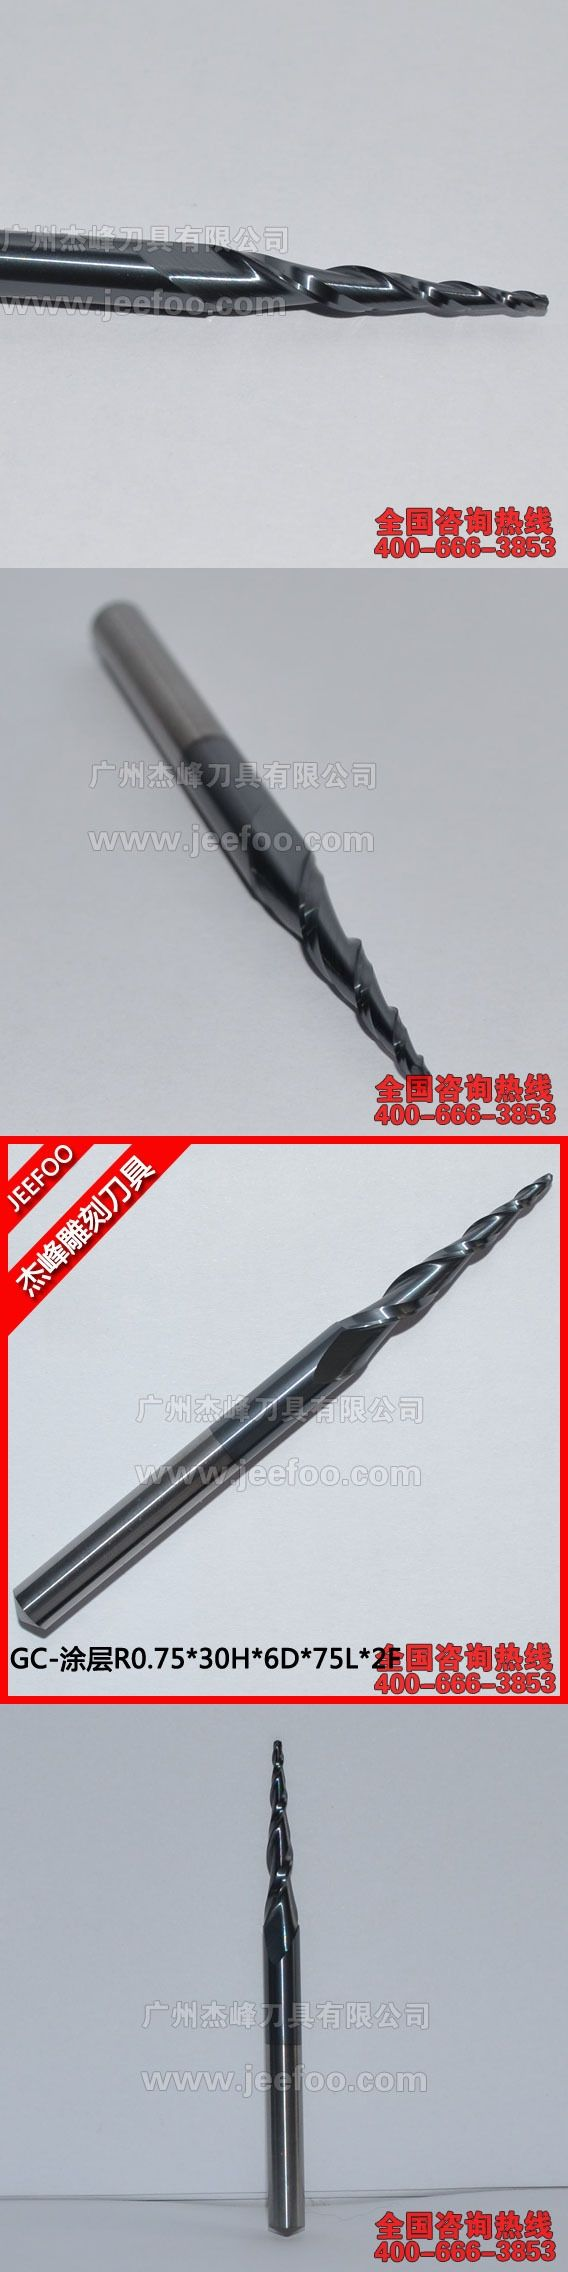 R0.75*30H*6D*75L*2F High Quality  Taper Flute 2 Flutes Ball Nose End Mill/tungsten Carbide Tapered Ball End Mill